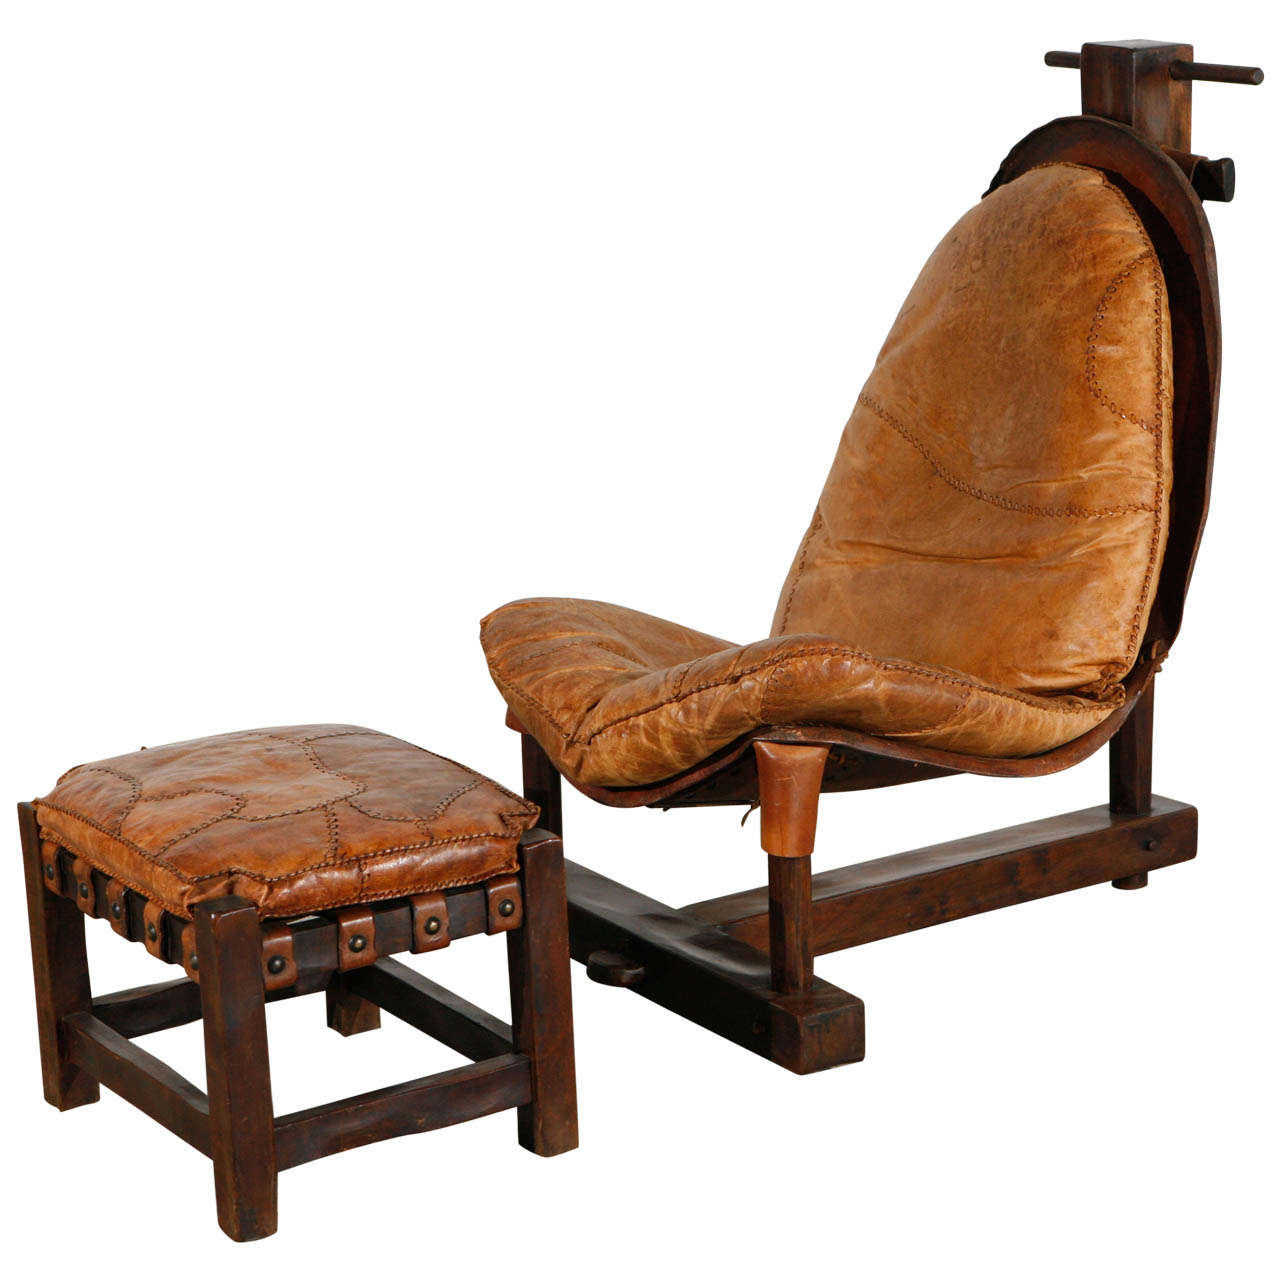 Unusual Chairs Unusual Handmade Chair And Ottoman At 1stdibs